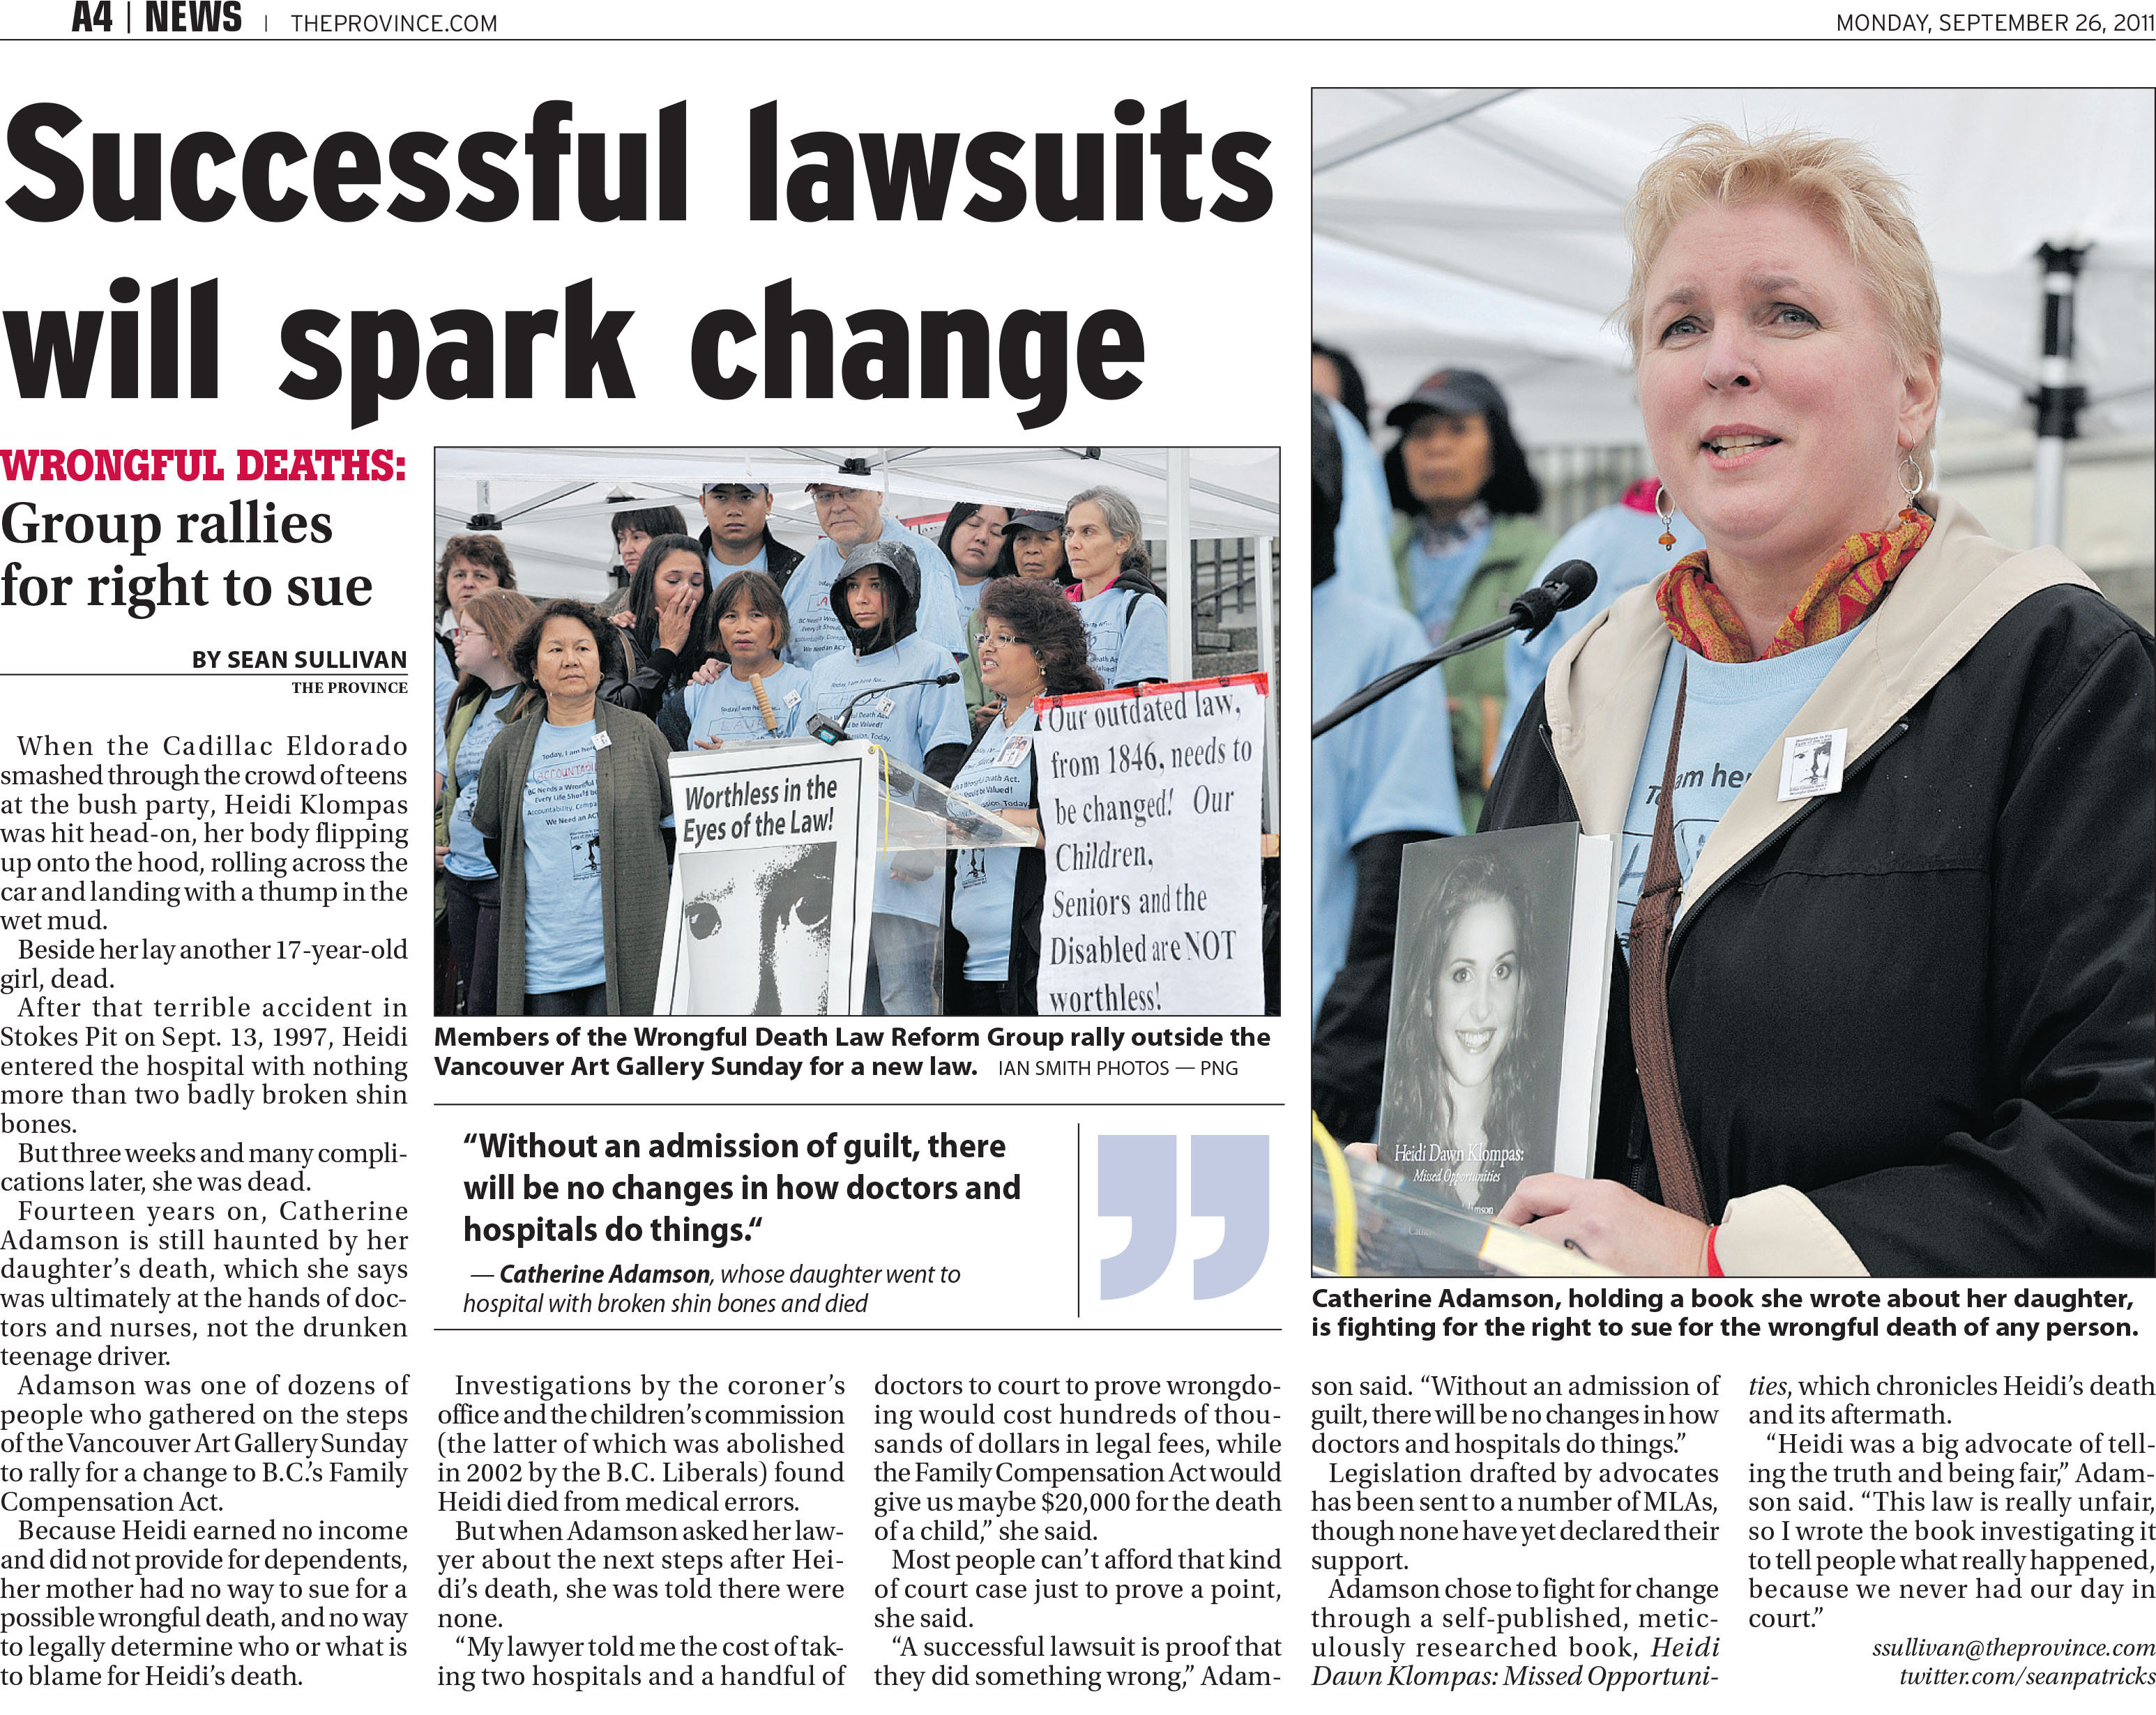 Province_-_Successful_lawsuits_will_spark_change_-_26SEP11